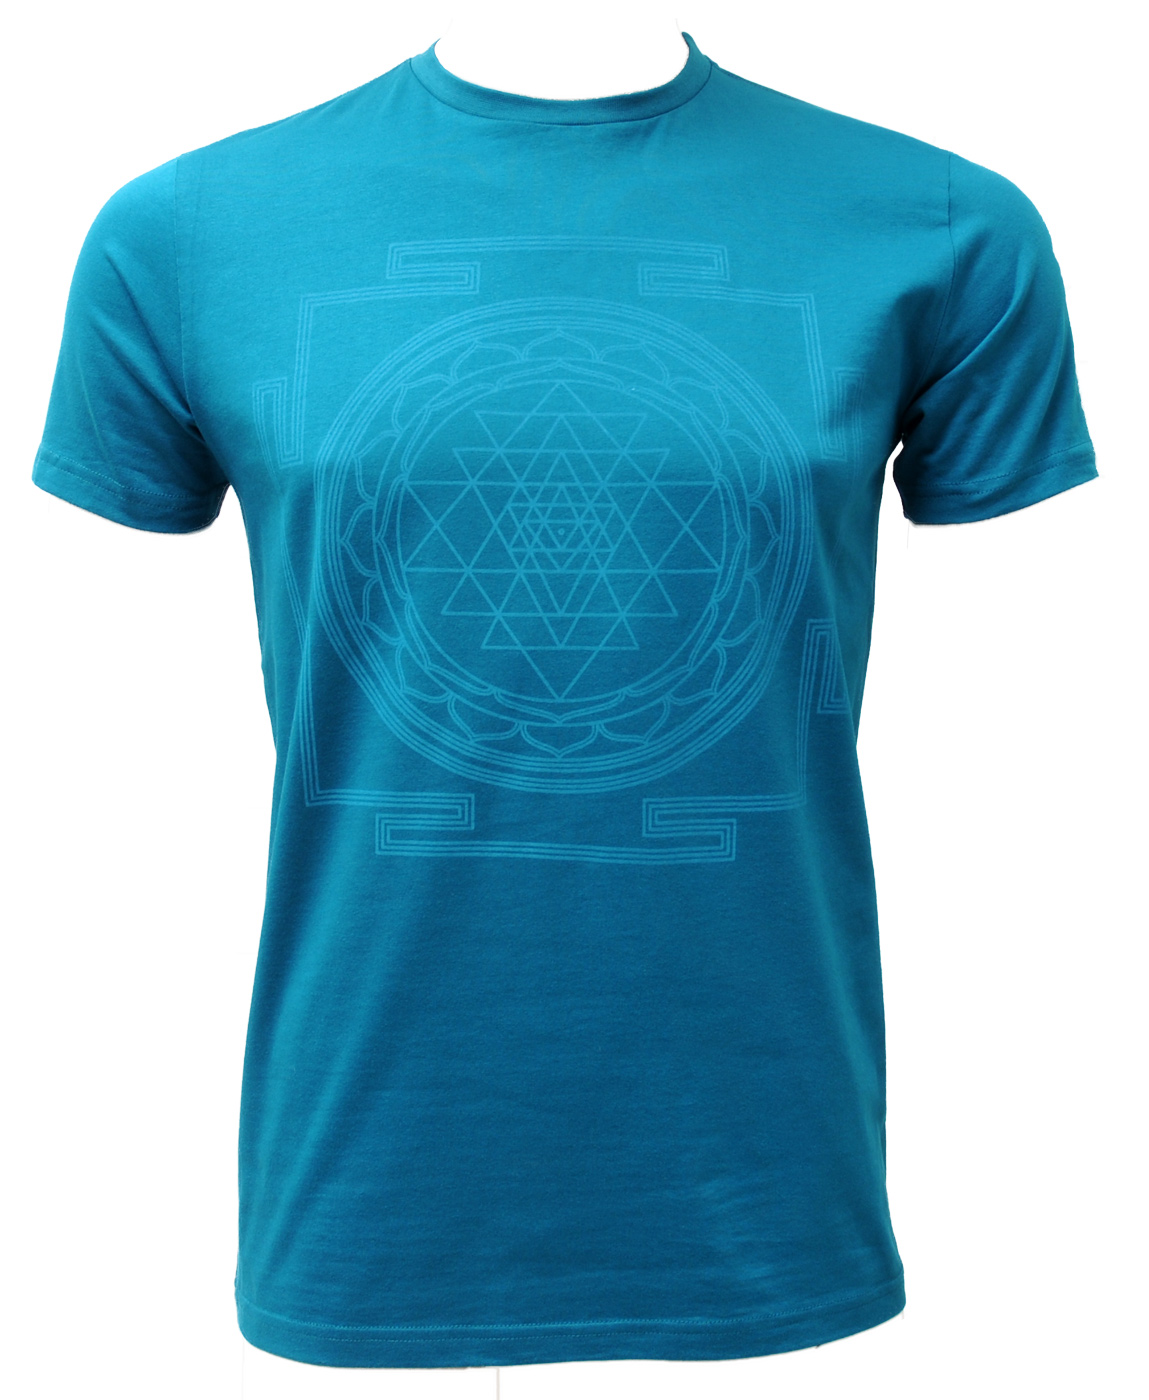 "Yoga-T-Shirt ""Sri Yantra"" - men - petrol"